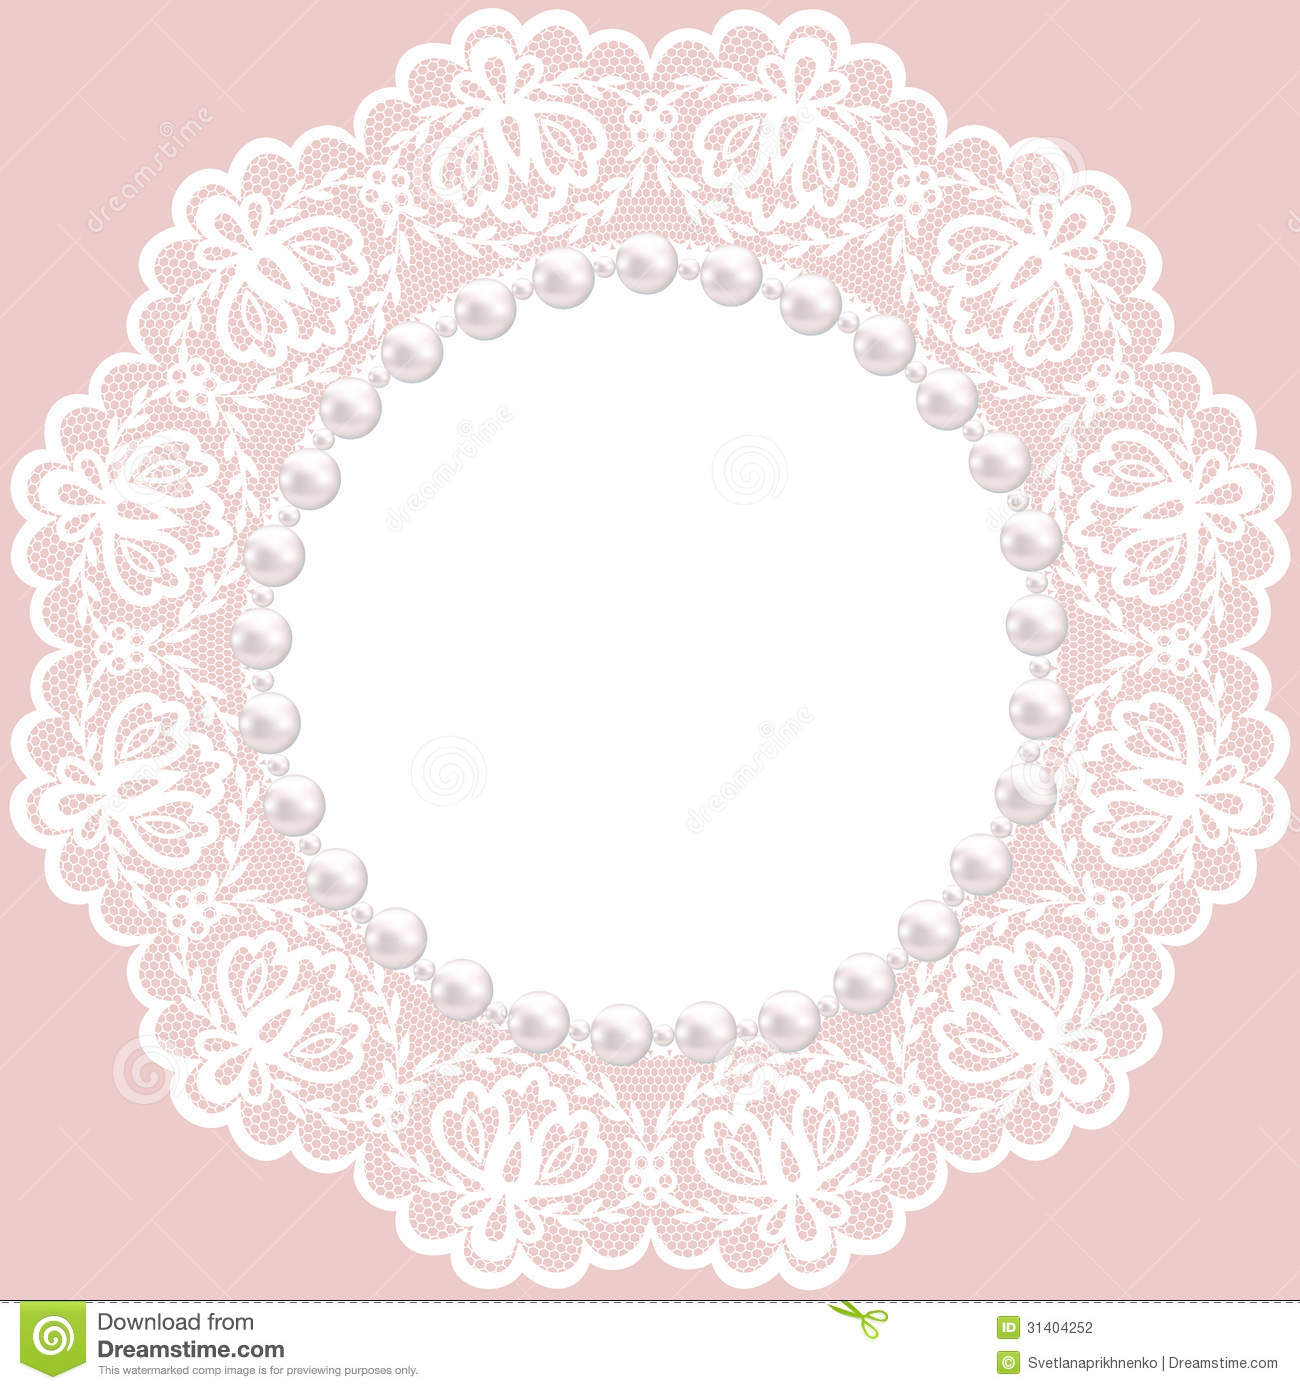 Doily Cartoons Illustrations Amp Vector Stock Images